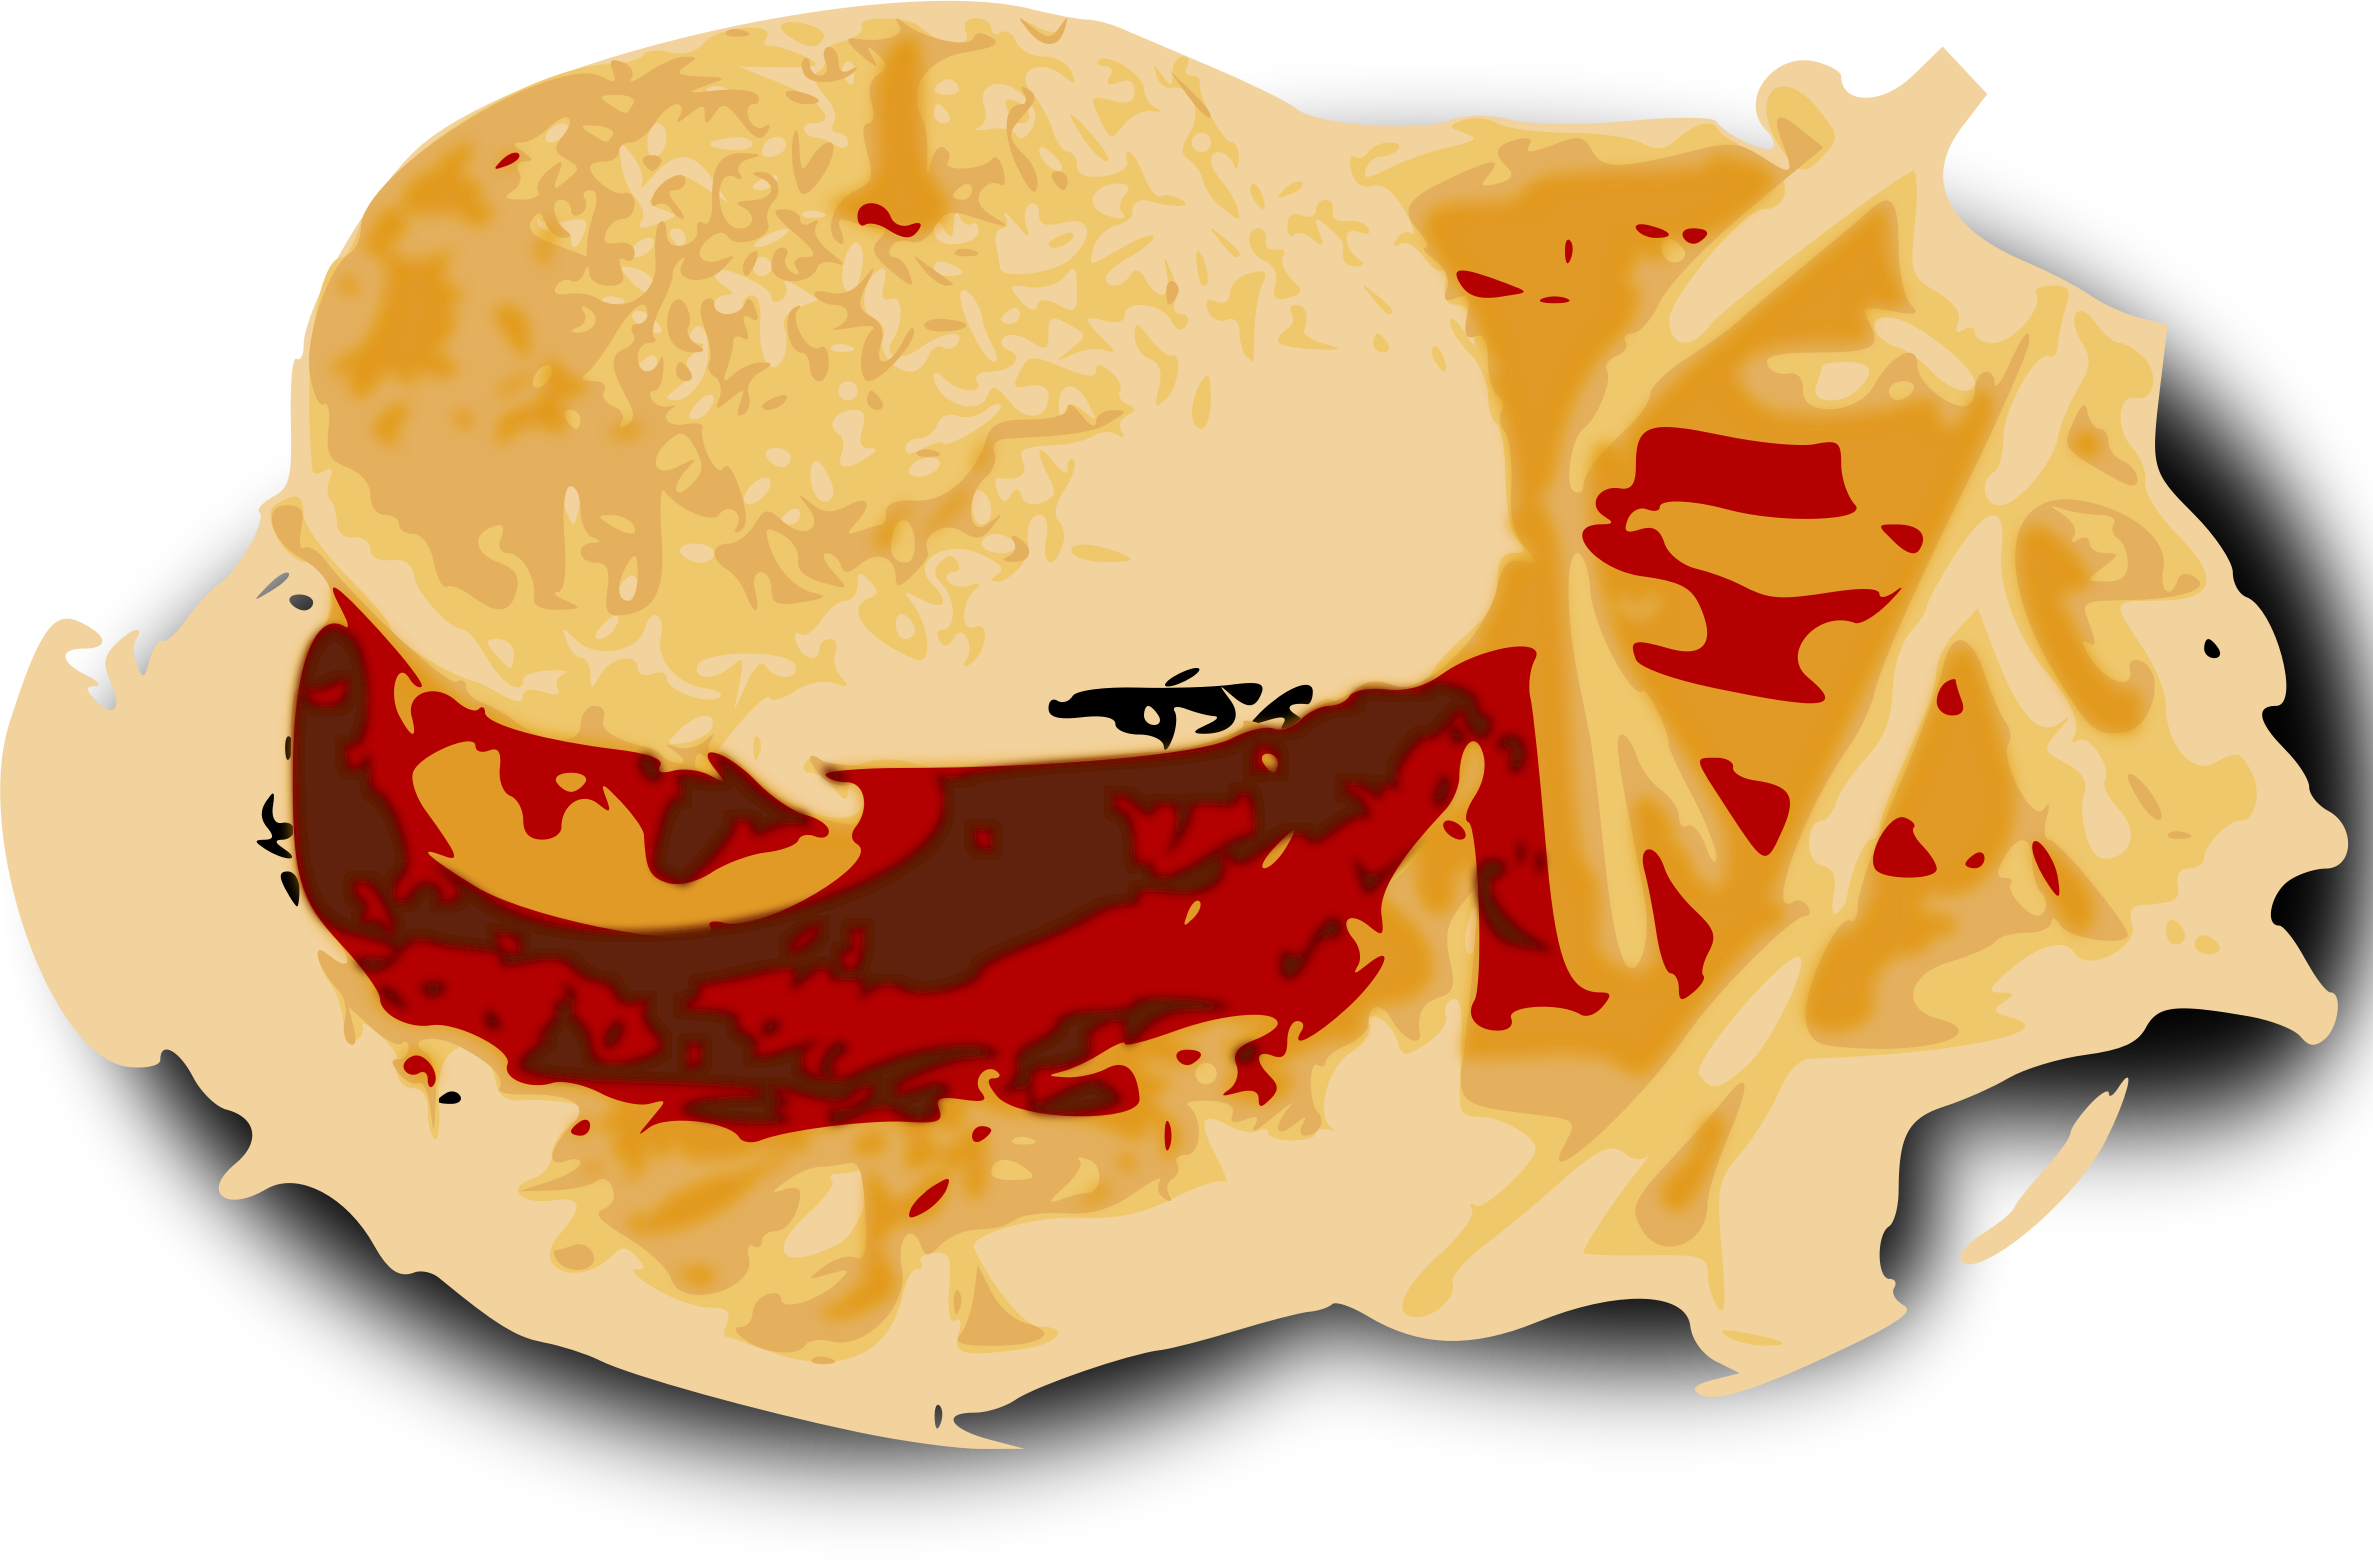 Remix icons png free. Fries clipart burger